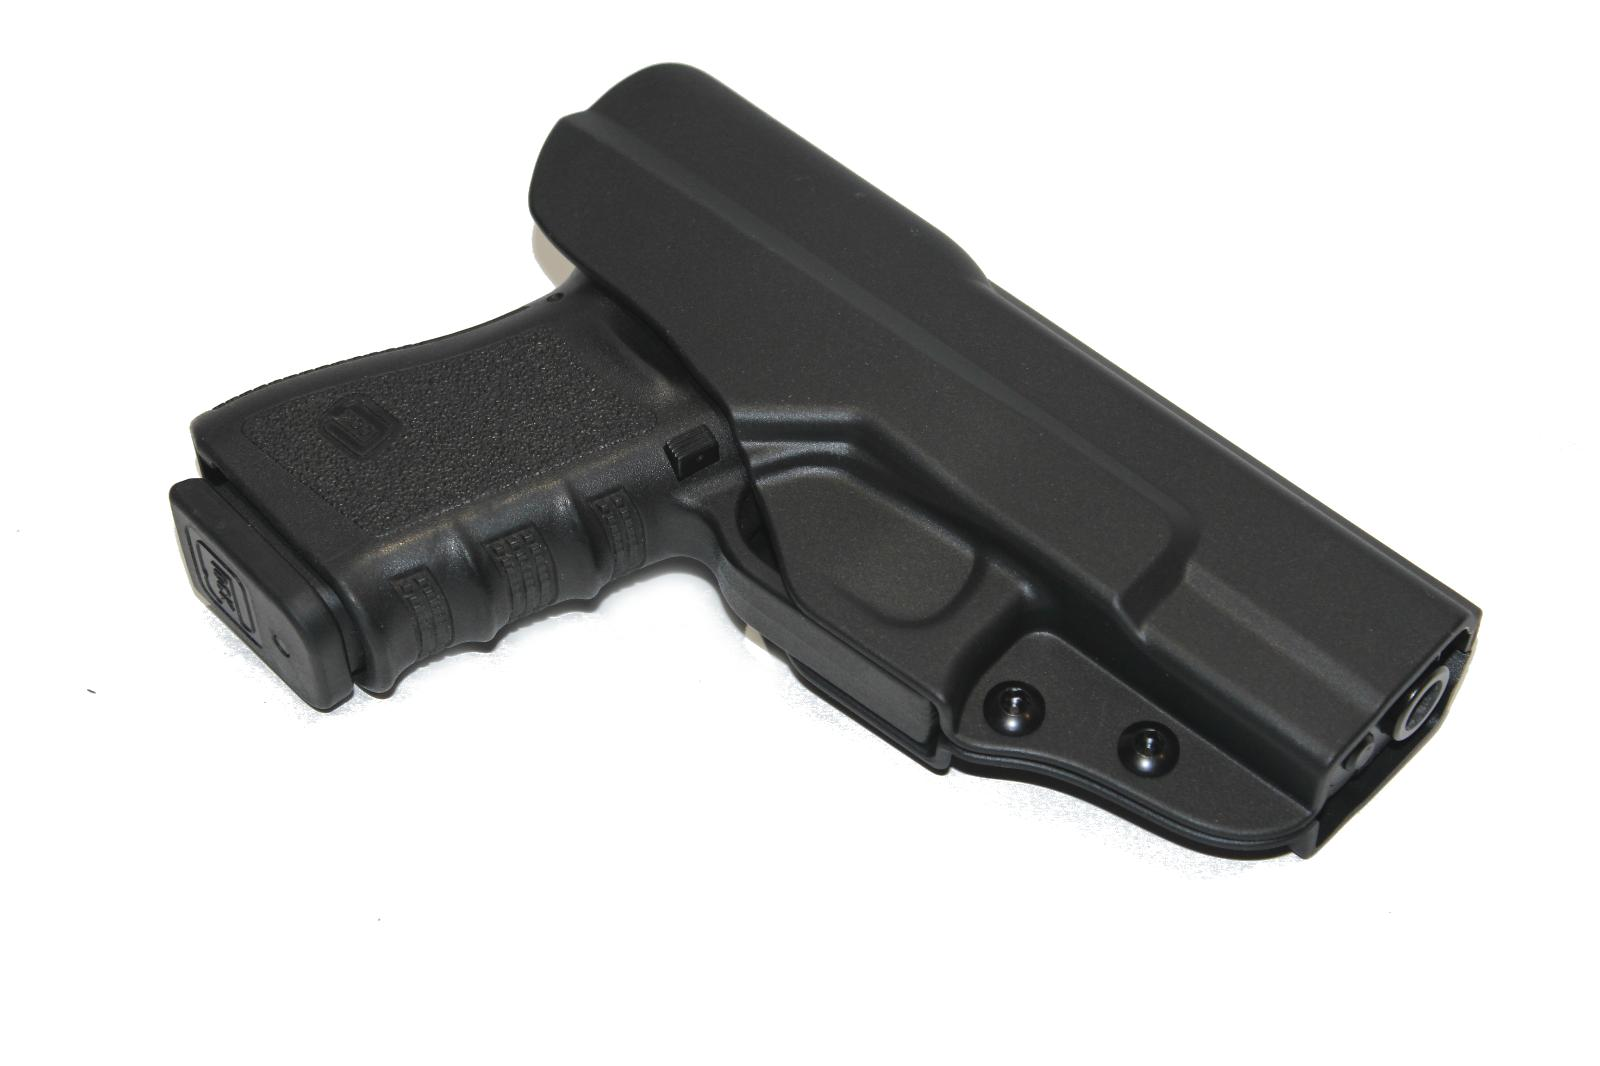 For 32 IWB Concealed Carry Gun